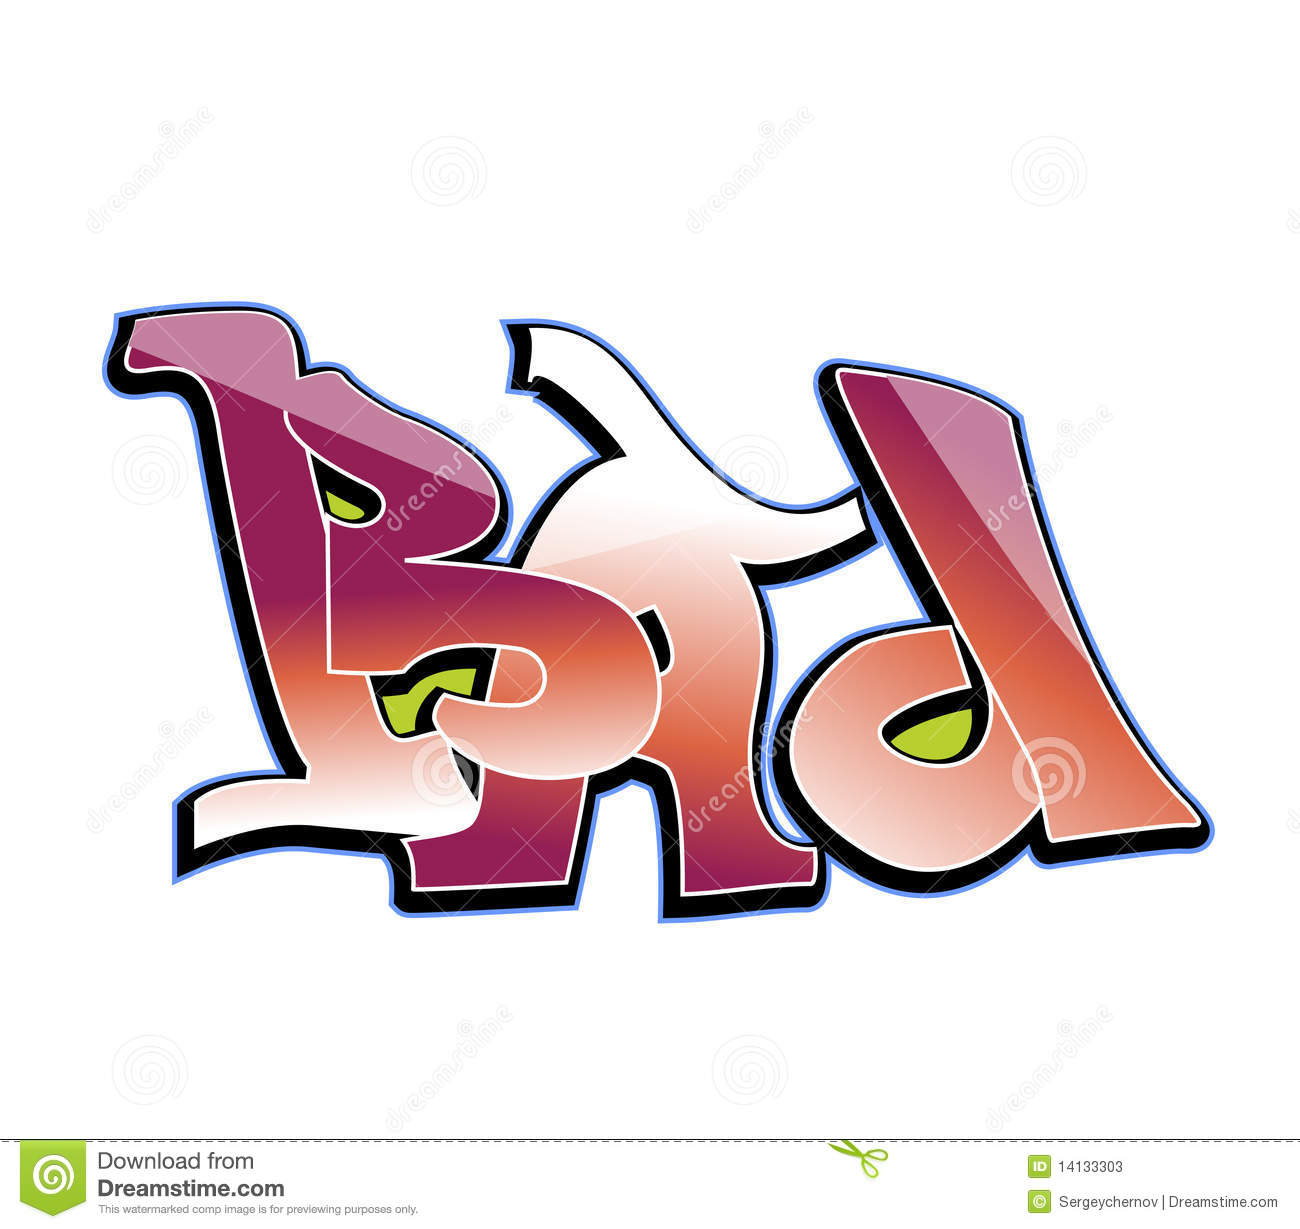 Art Design : Graffiti art design bad stock photos image